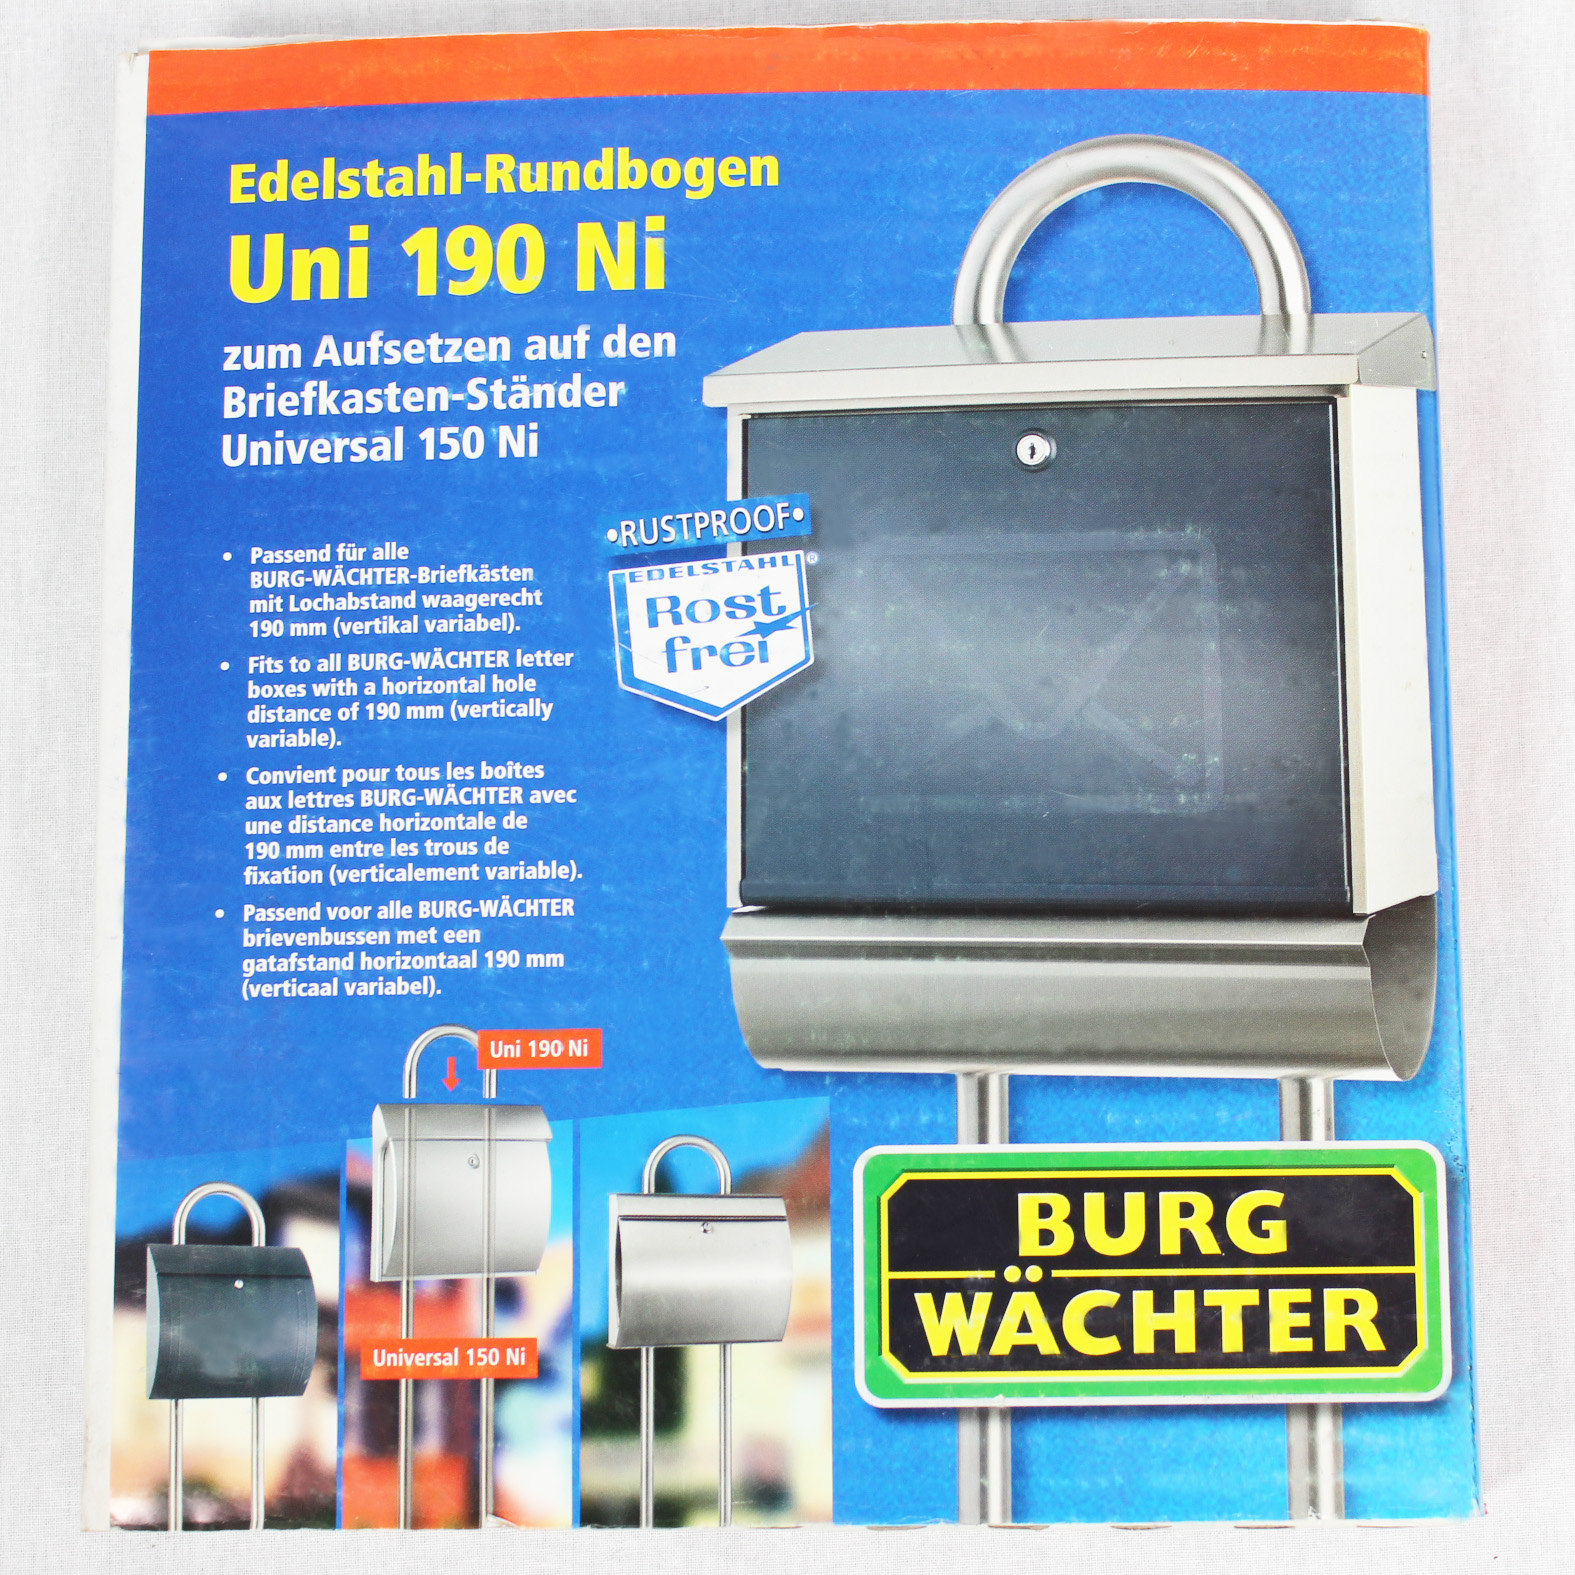 burgw chter edelstahl rundbogen briefkasten st nder universal 190 ni uni aufsatz ebay. Black Bedroom Furniture Sets. Home Design Ideas